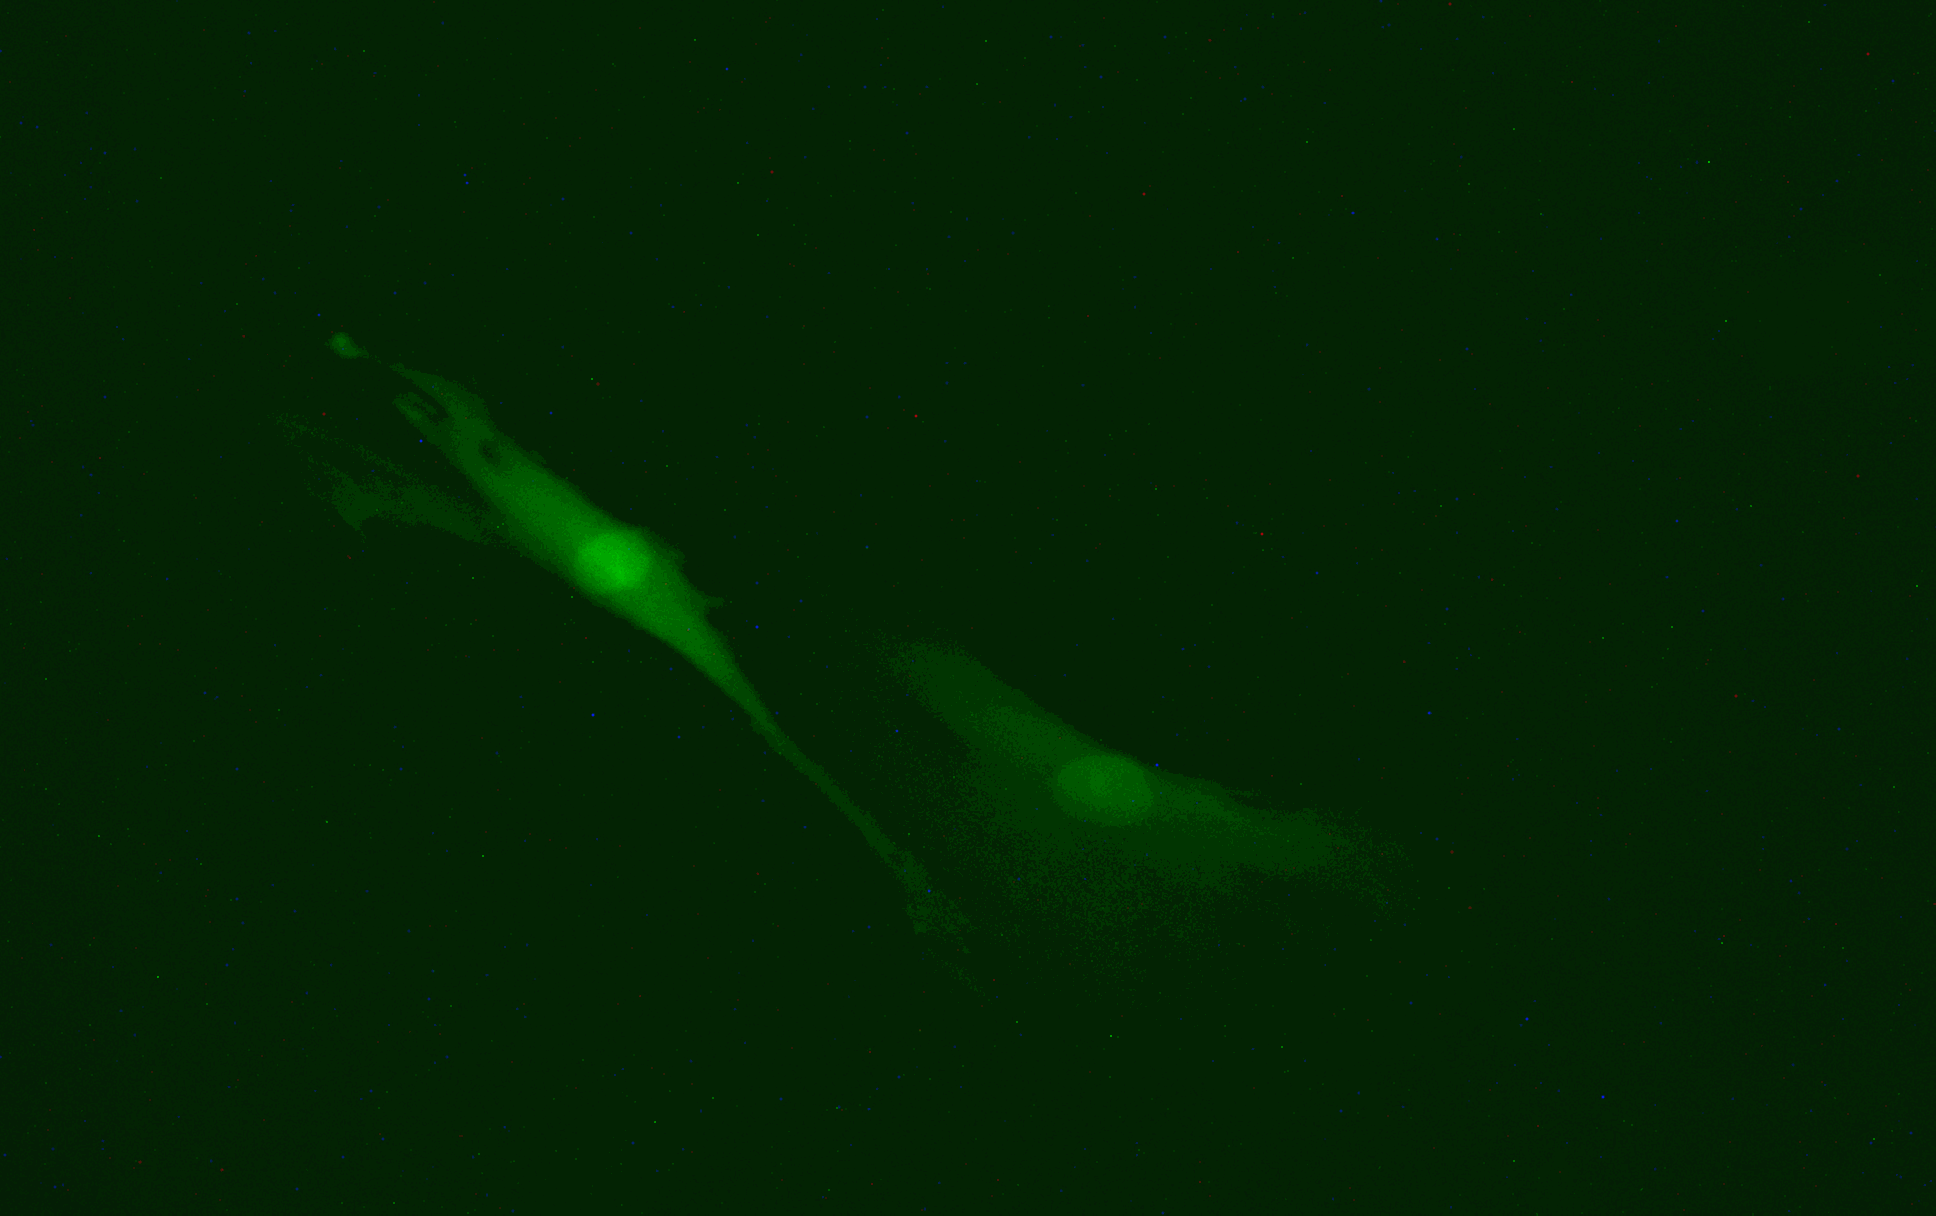 Lucifer Yellow injected into mouse embryonic fibroblasts (MEF).